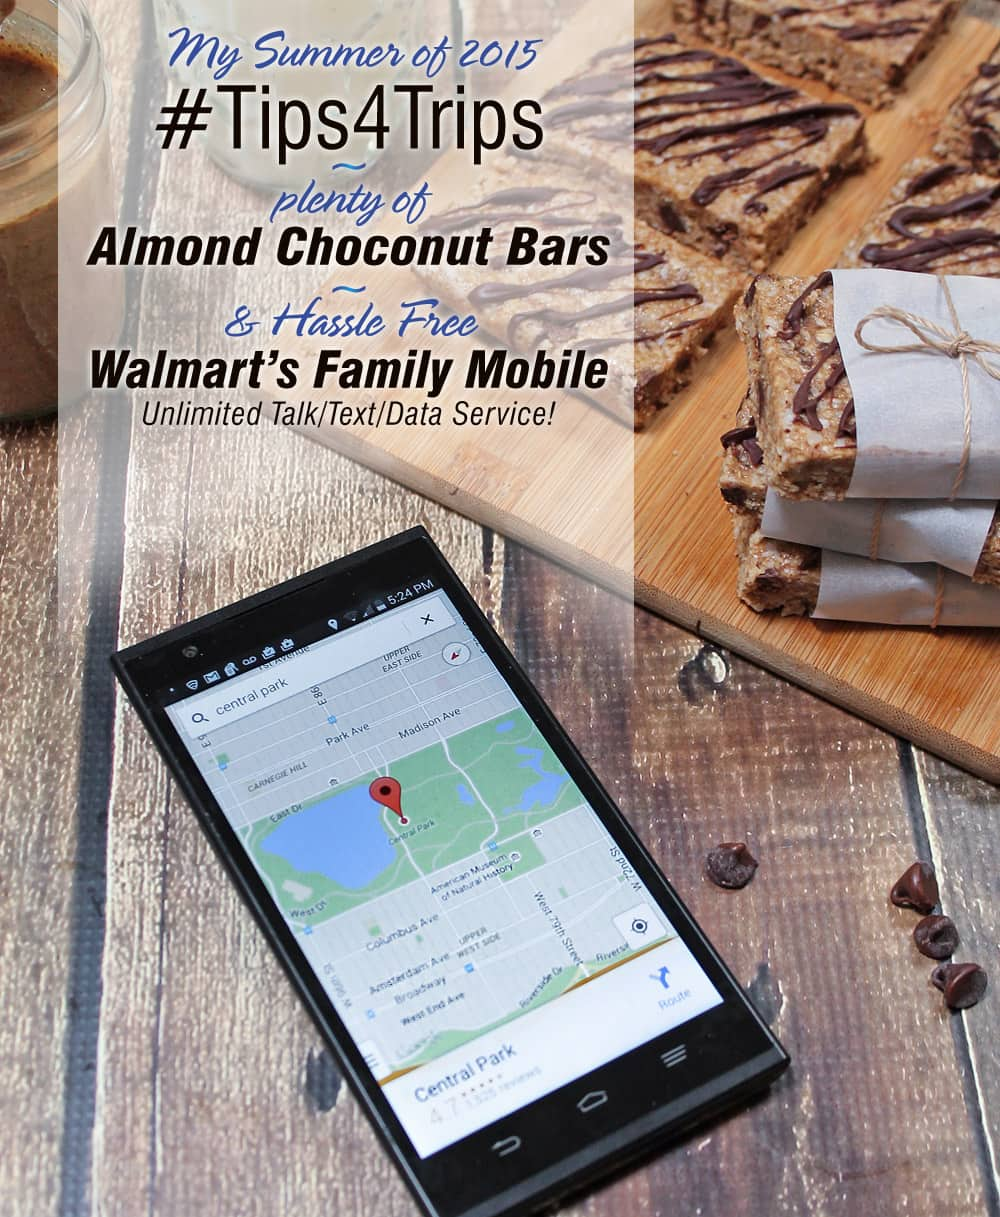 Walmart Family Mobile ZTE ZMAX #TIPS4TRIPS